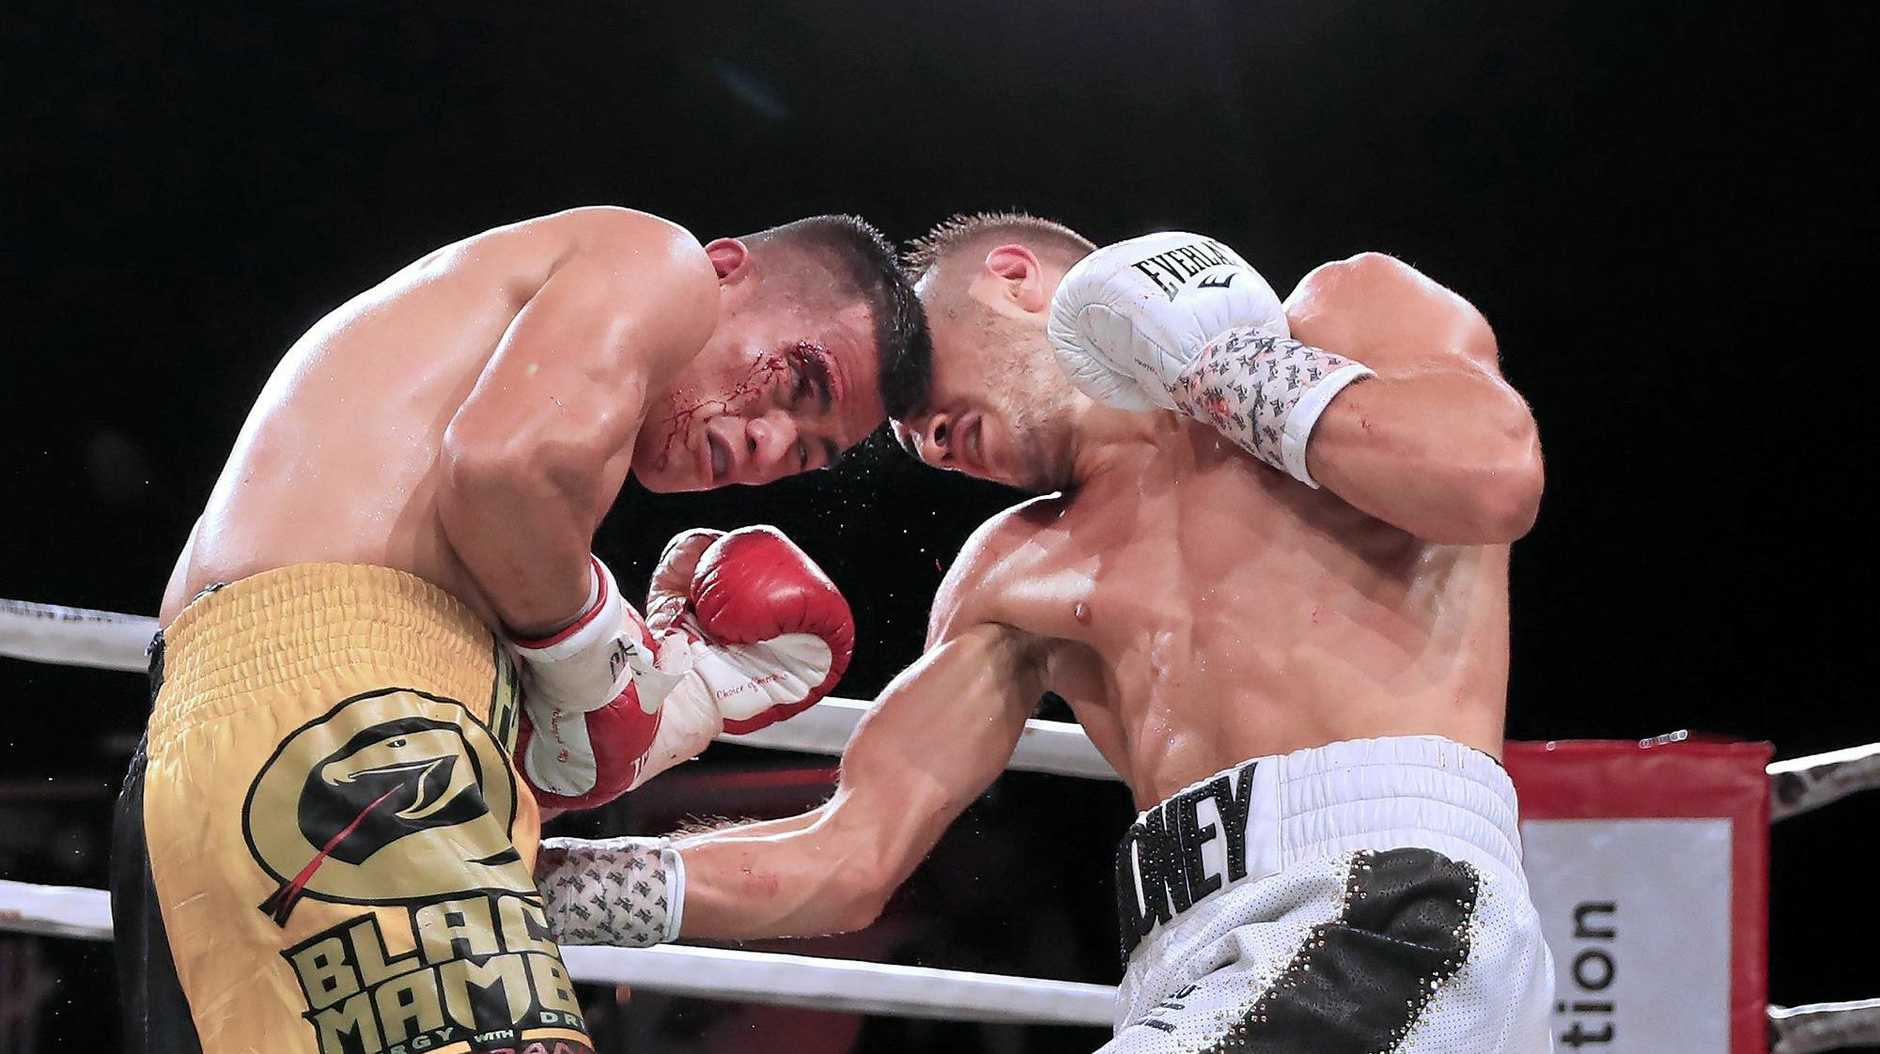 Jason Moloney (right) stopped his opponent, Cris Paulino, in the fifth round of their WBA Oceania bantamweight title bout in March.